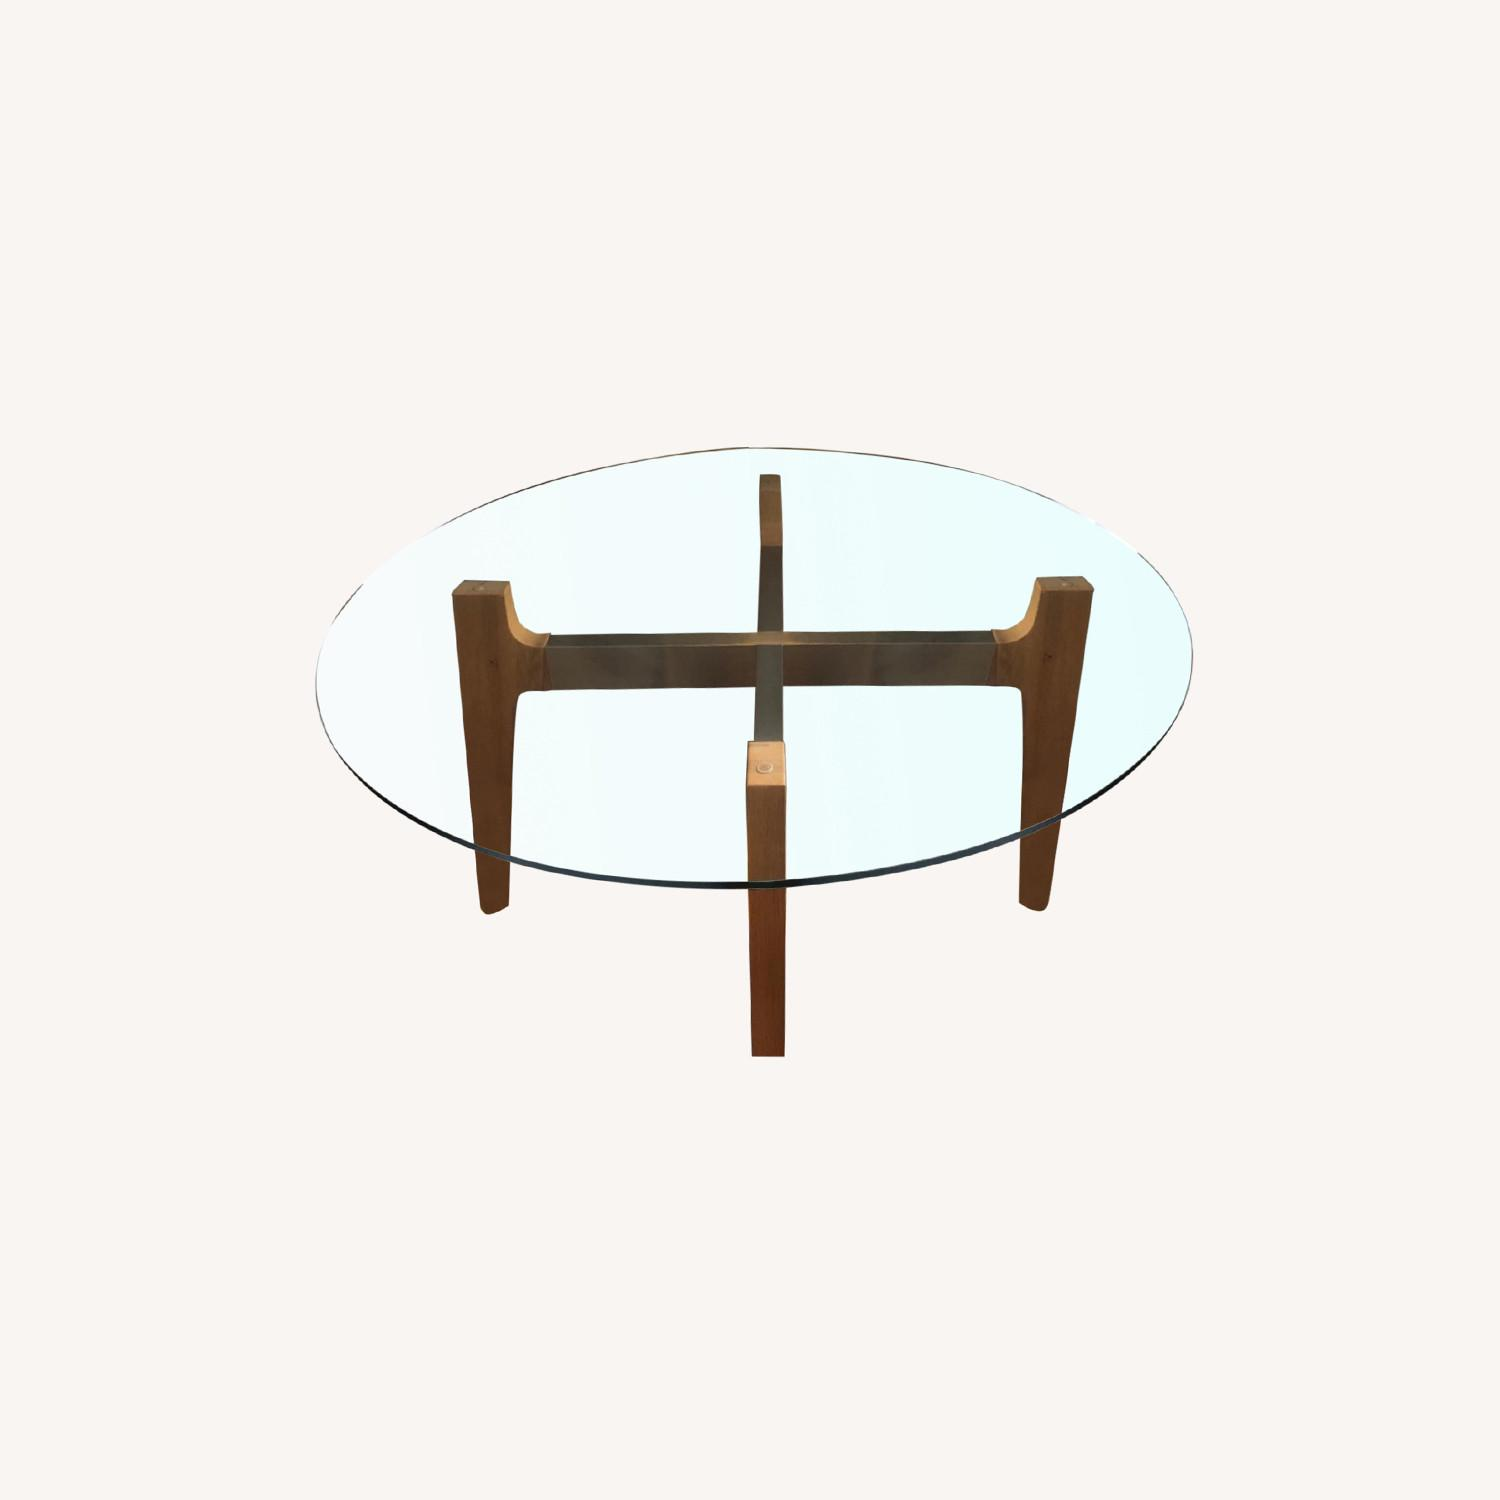 Crate and Barrel 48 Glass Table - image-0